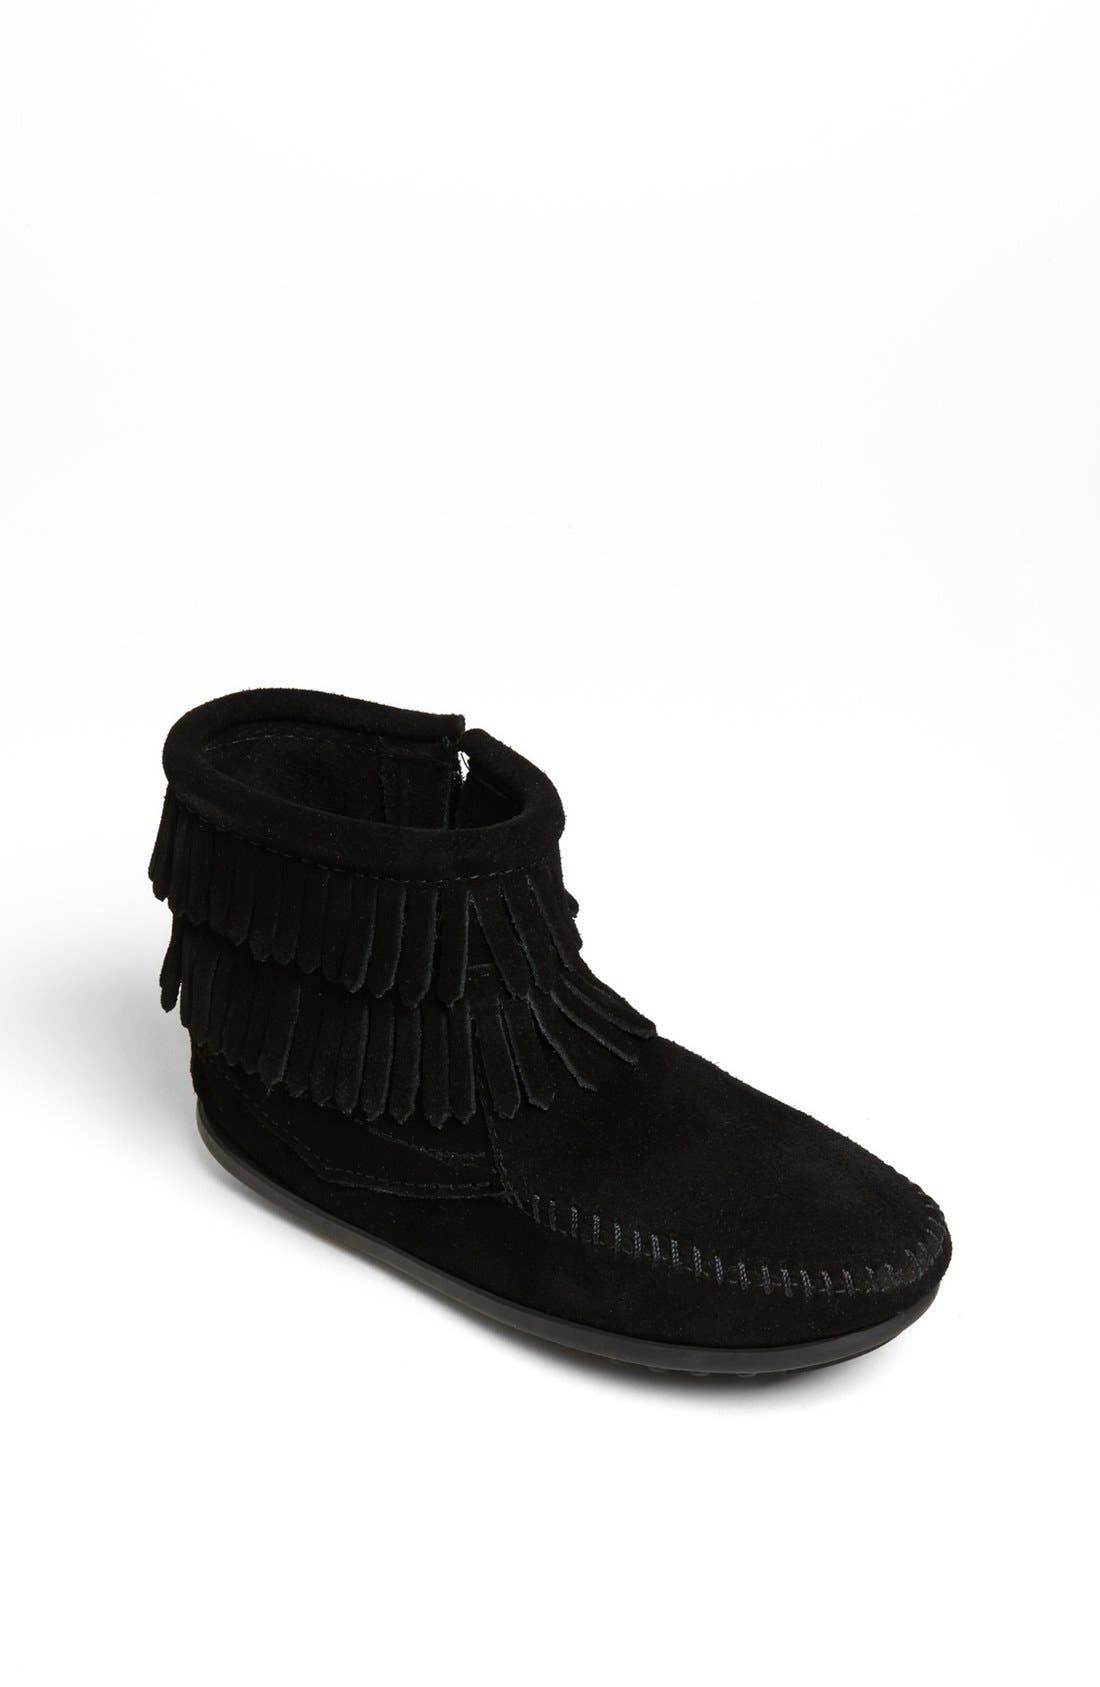 Alternate Image 1 Selected - Minnetonka 'Double Fringe' Boot (Baby, Walker, Toddler, Little Kid & Big Kid)